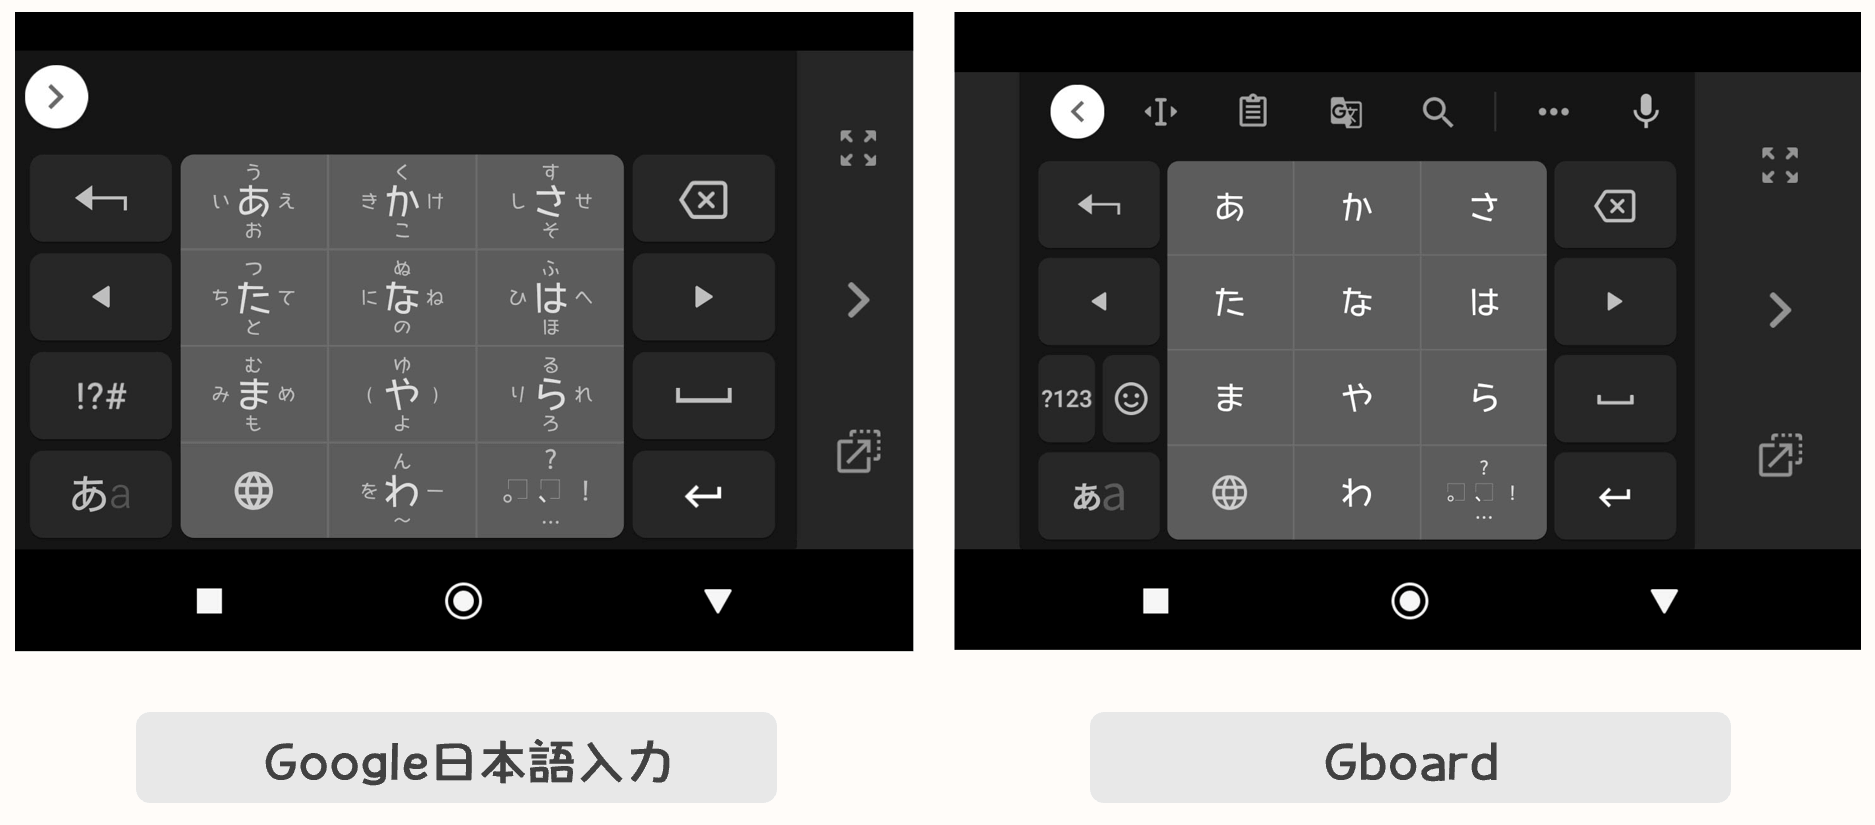 Google-japanese-ime-and-gboard-comparison